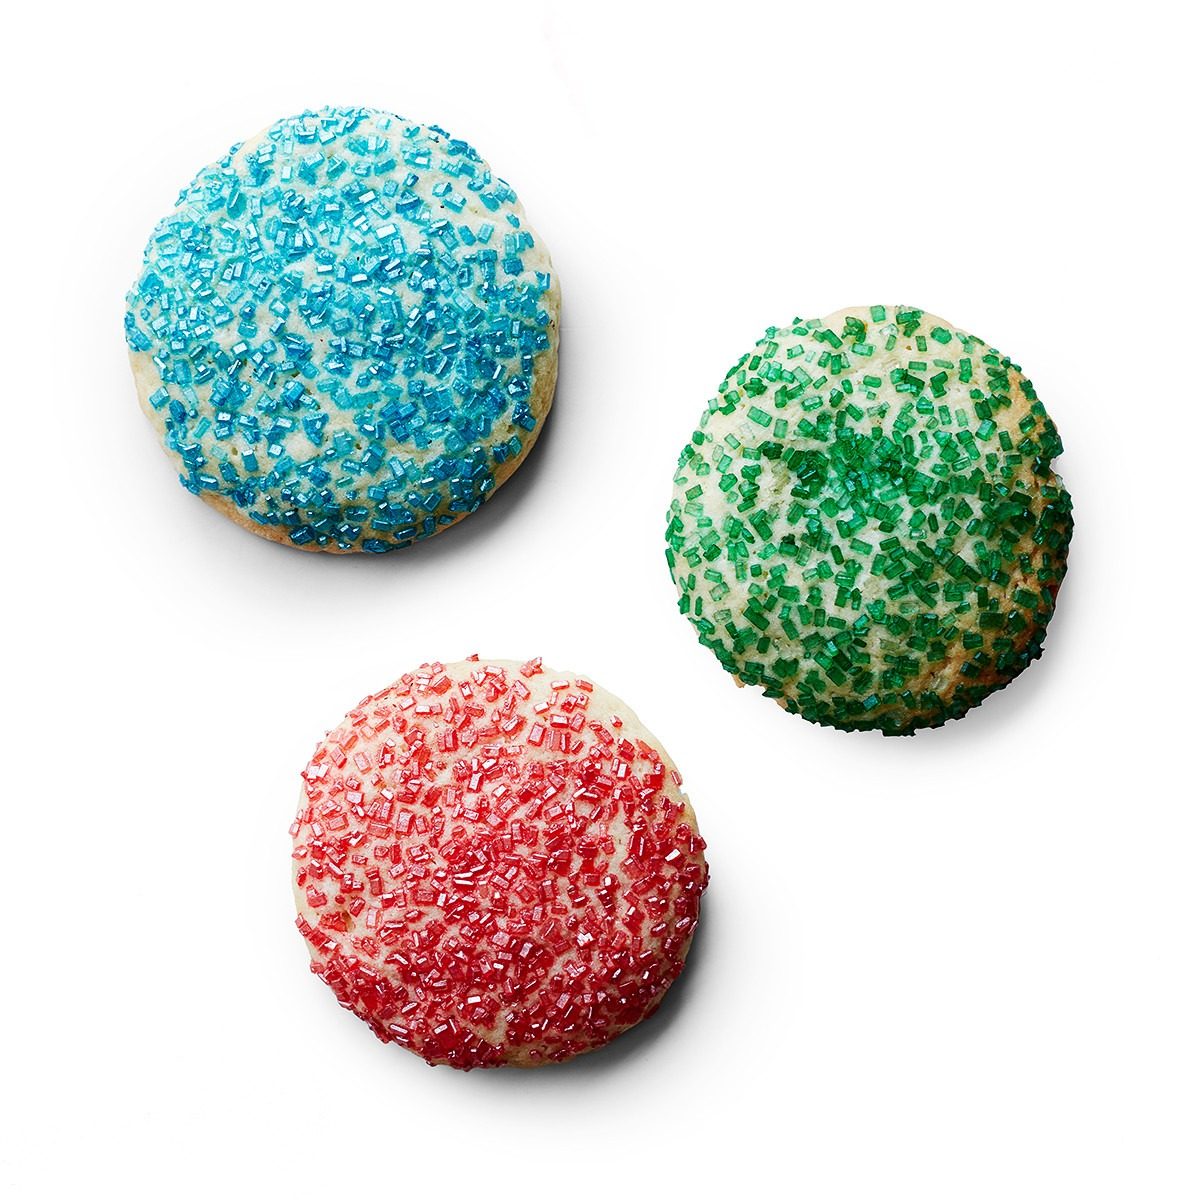 Soft Sugar Cookies With Colored Sugar